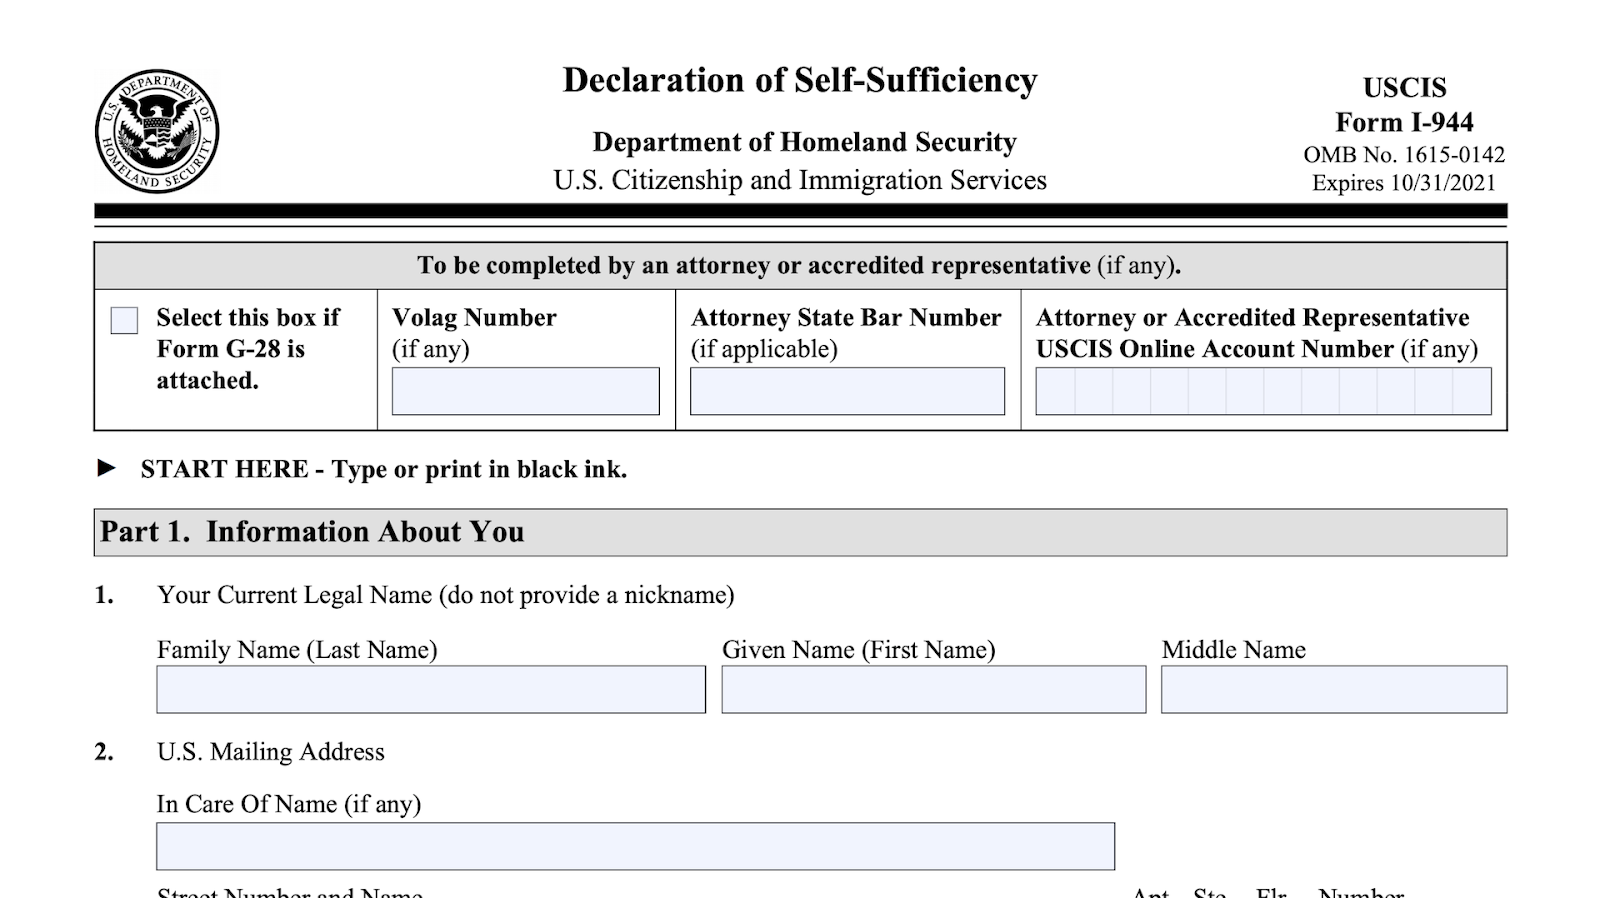 Screenshot of the form i-944 declaration of self-sufficiency first page